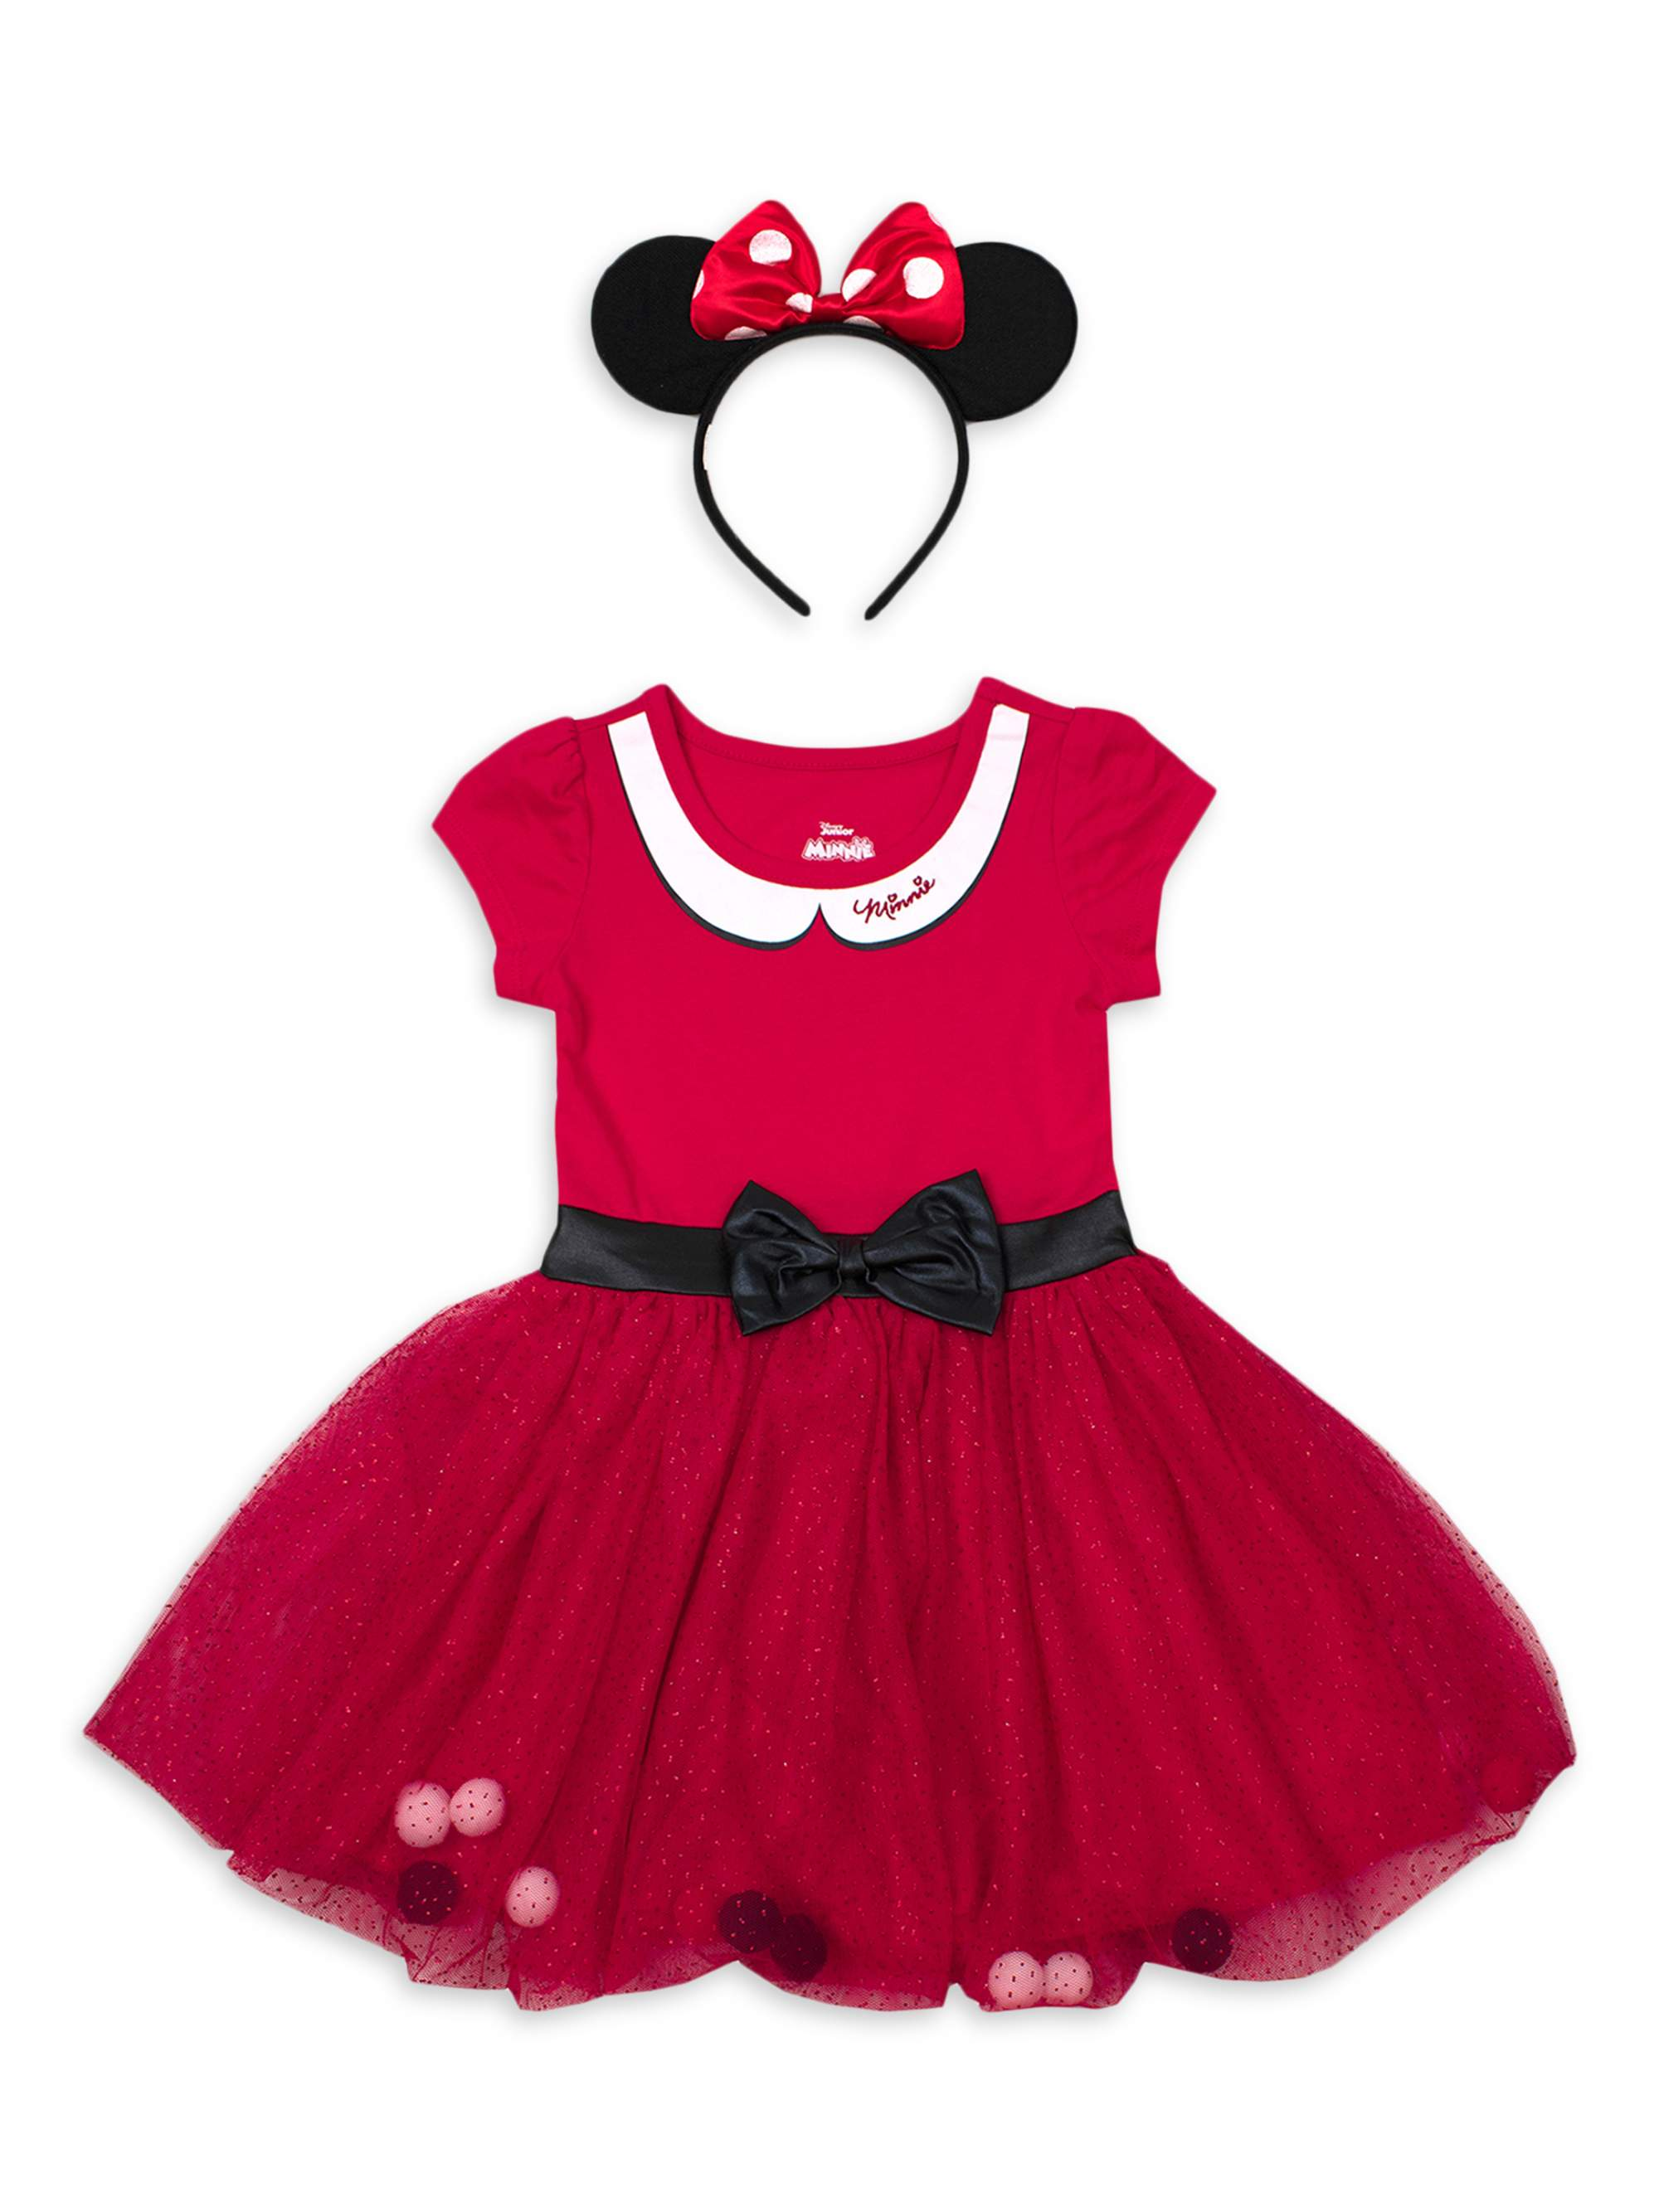 MINNIE MOUSE DISNEY HIGH QUALITY COSPLAY COSTUME ANY TIME DRESS FREE SHIP